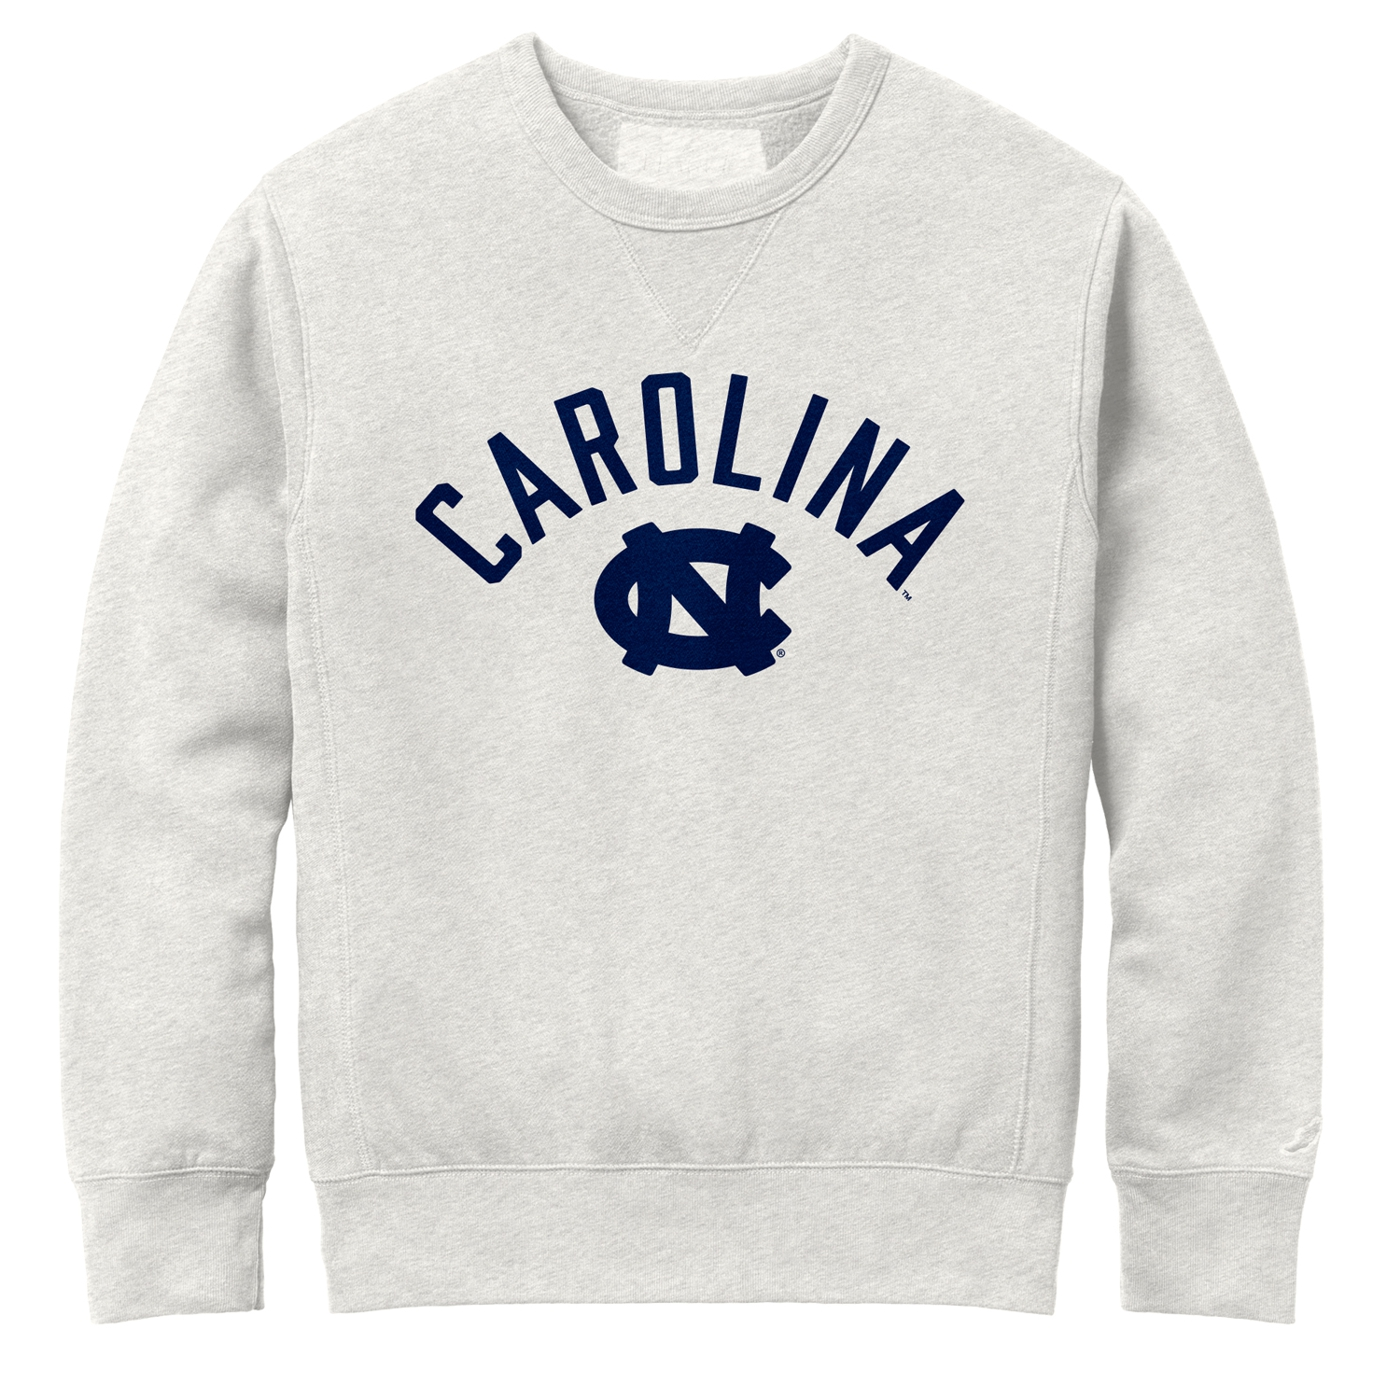 7da95f0c4 Johnny T-shirt - North Carolina Tar Heels - Game Day Stadium Crew ...